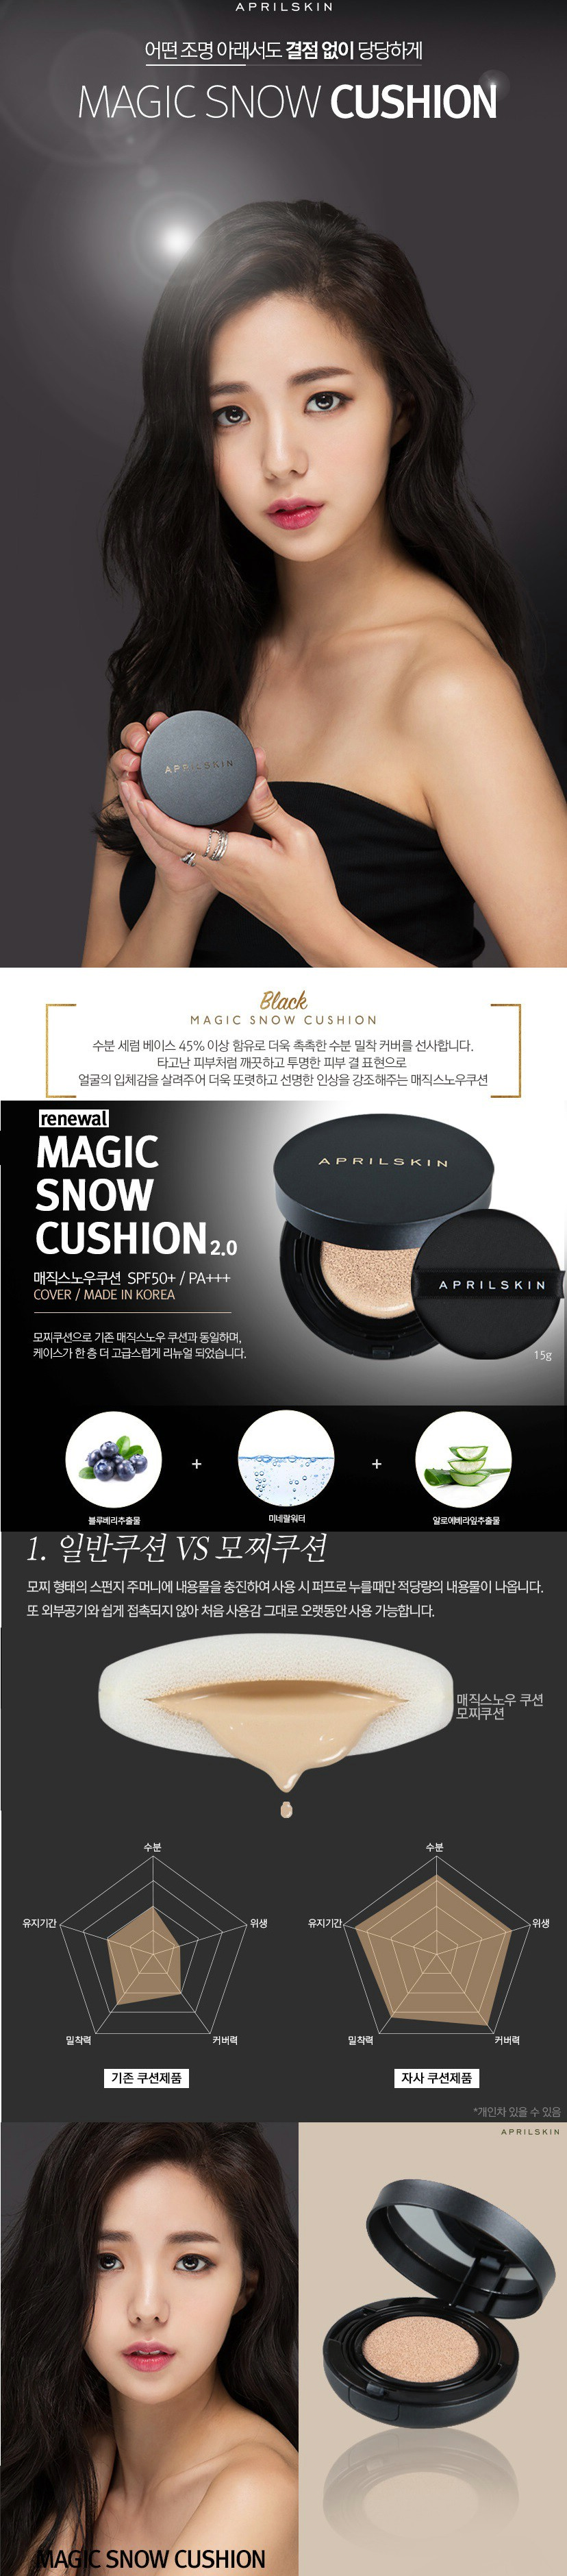 Phấn nước April Skin Magic Snow Cushion 2.0 SPF50+ PA+++